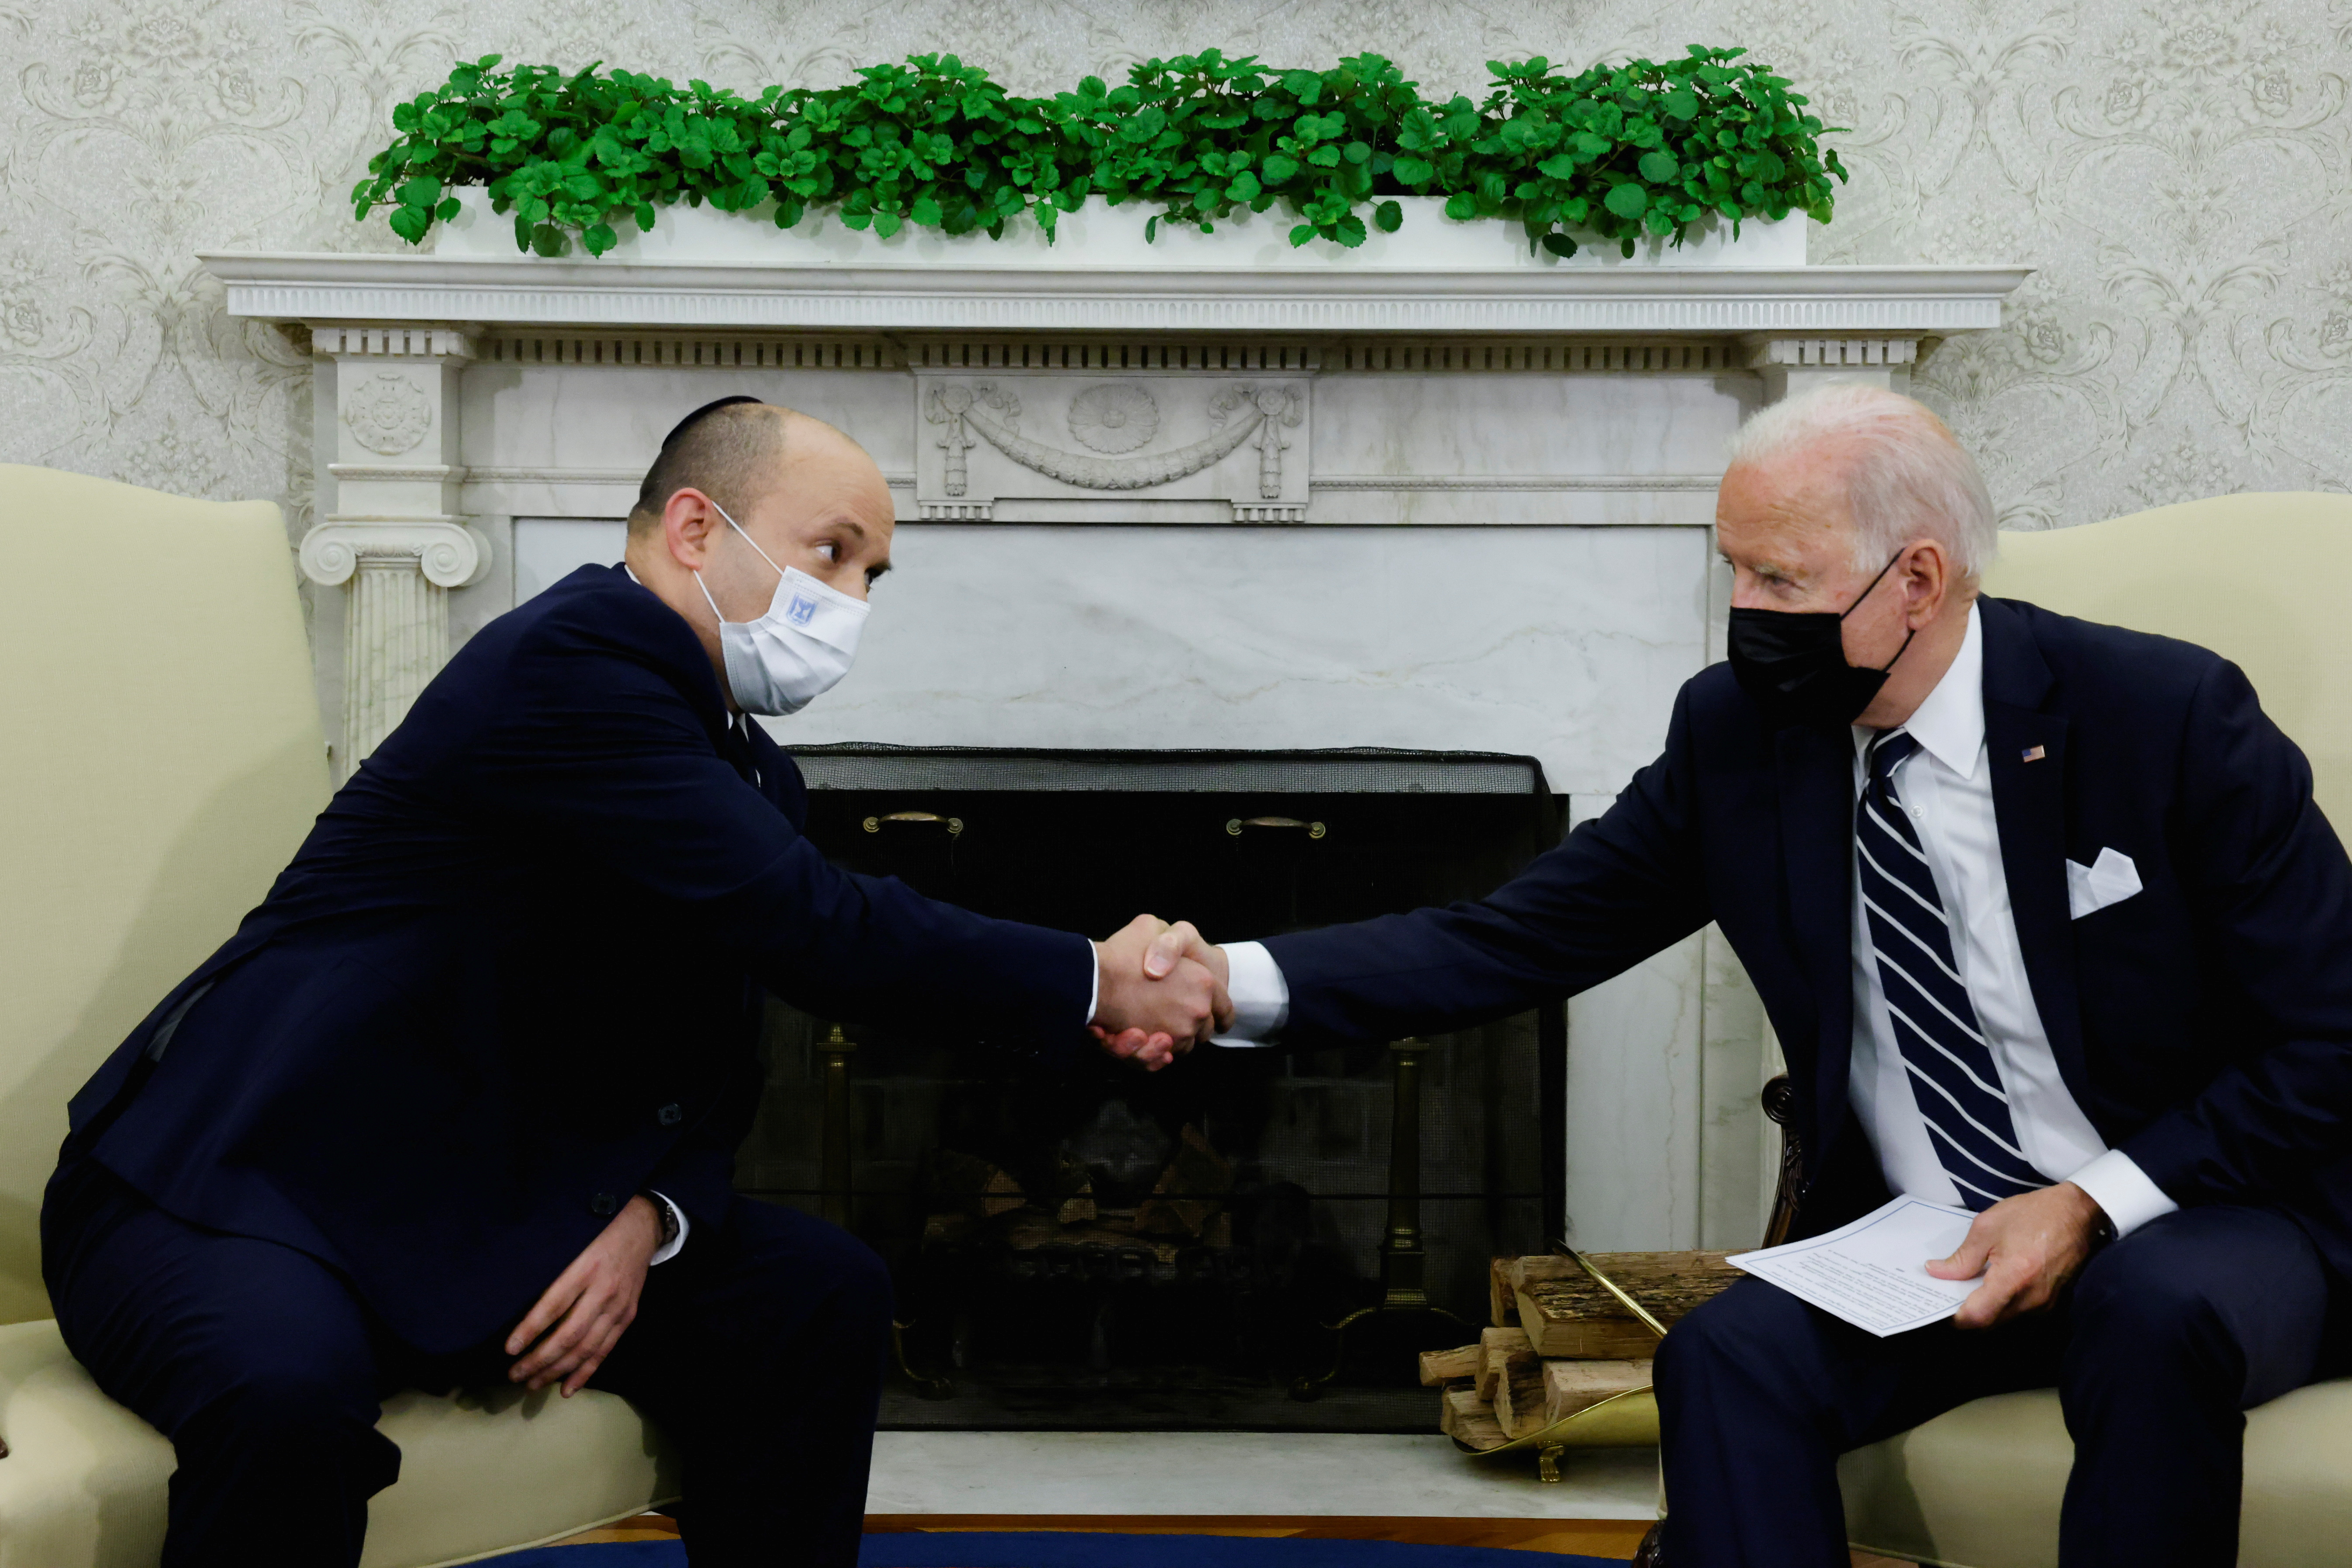 U.S. President Joe Biden and Israel's Prime Minister Naftali Bennett shake hands during a meeting in the Oval Office at the White House in Washington, U.S. August 27, 2021. REUTERS/Jonathan Ernst